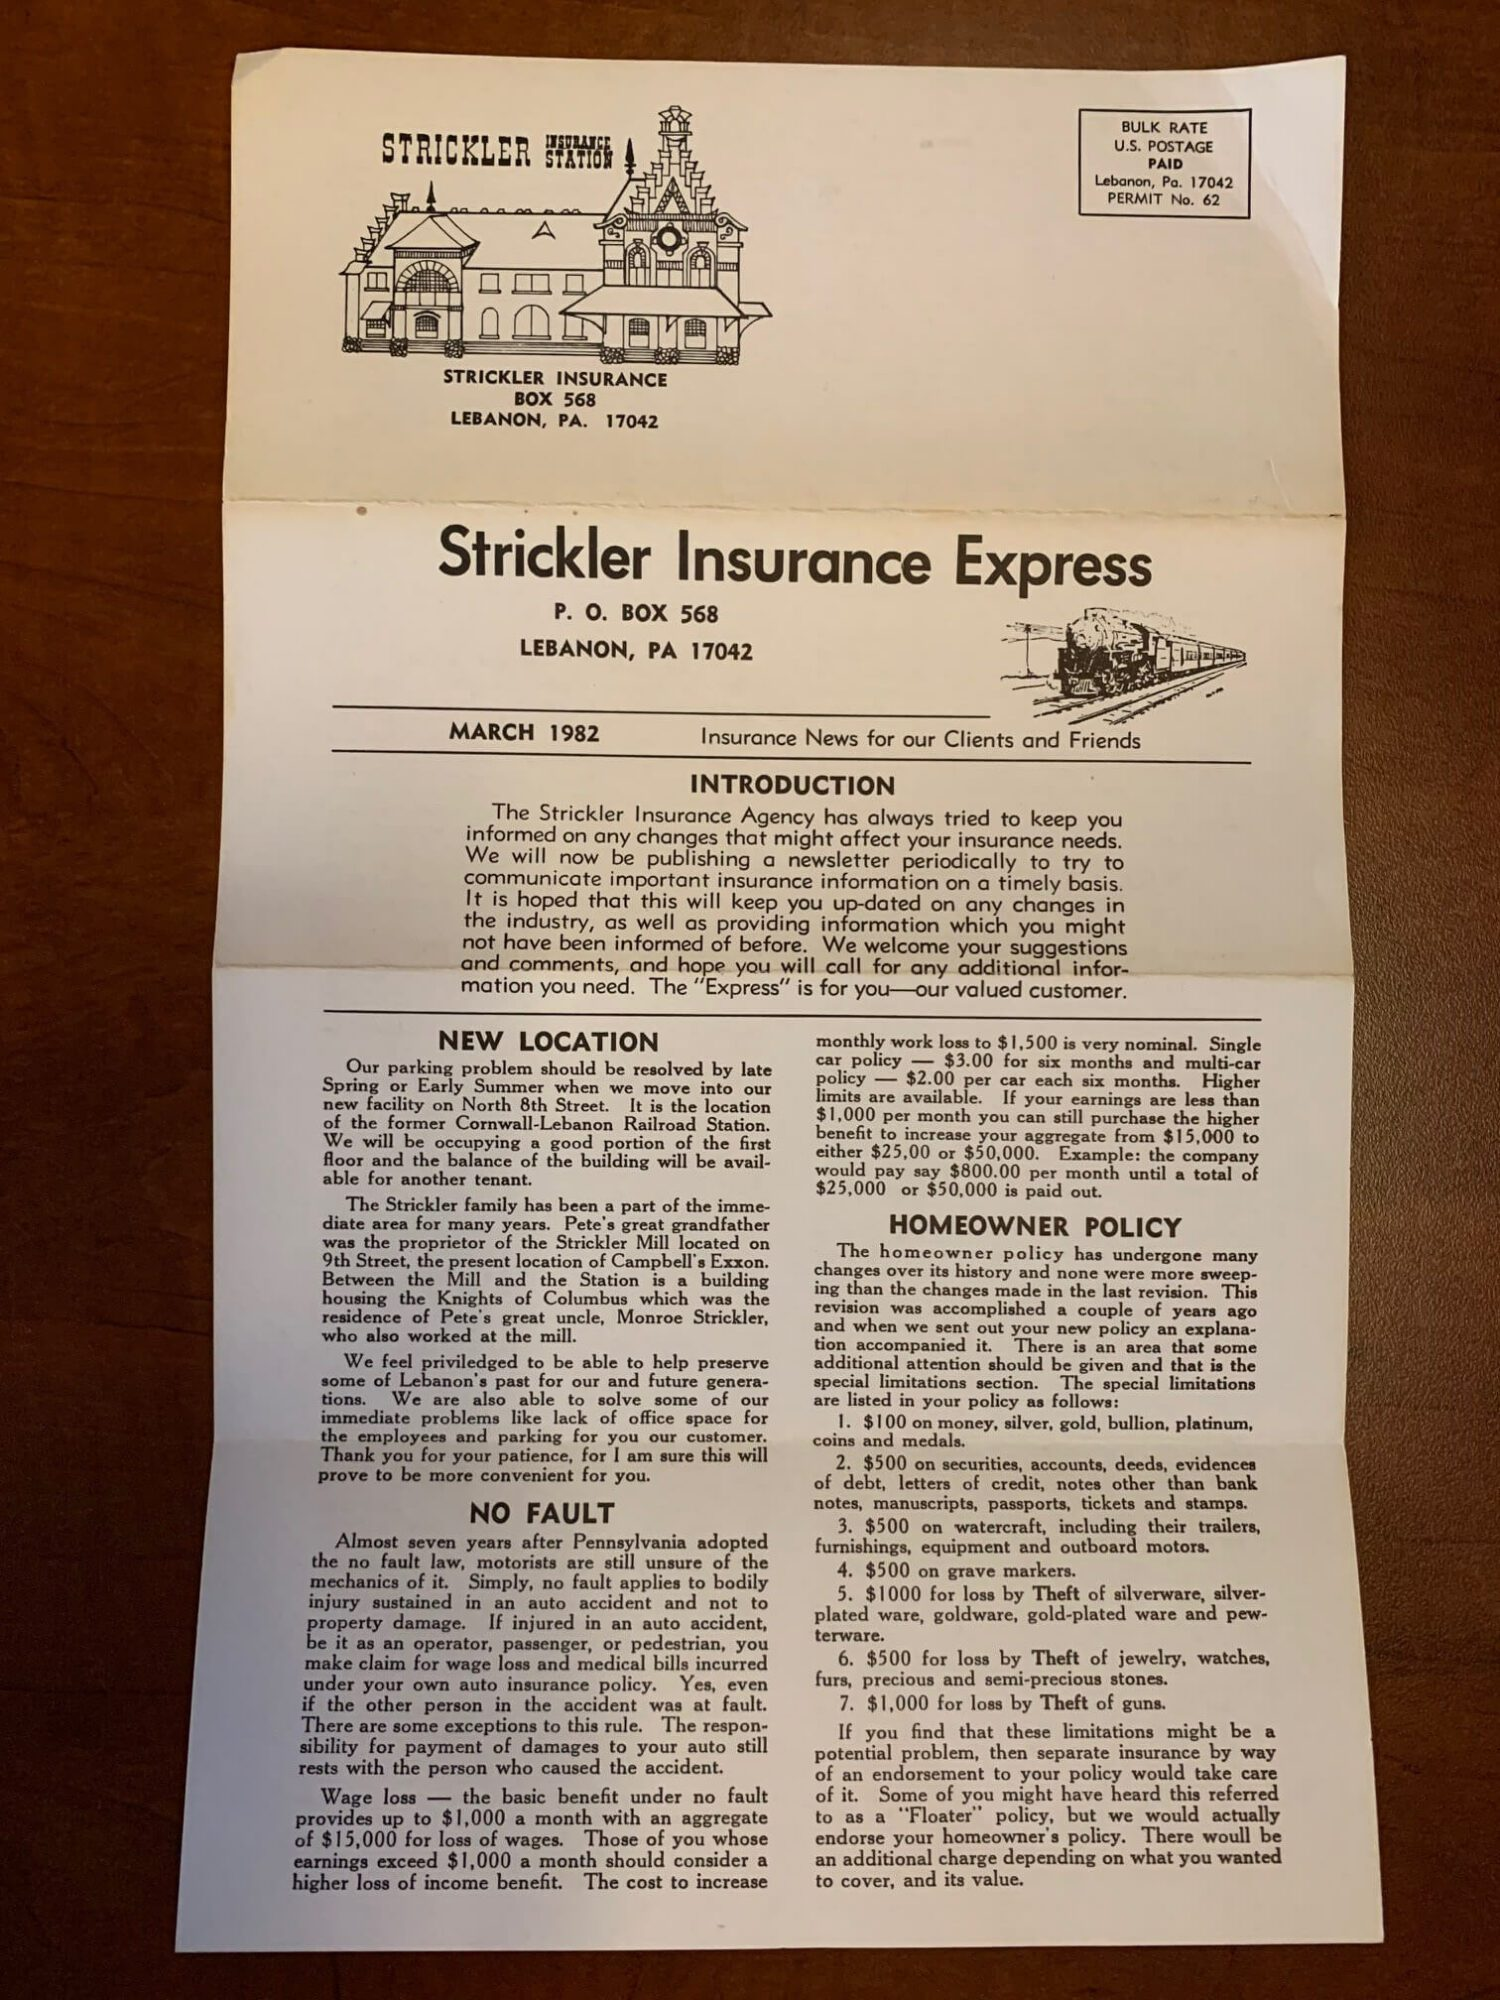 Strickler Express Insurance News From 1982 Front Page.